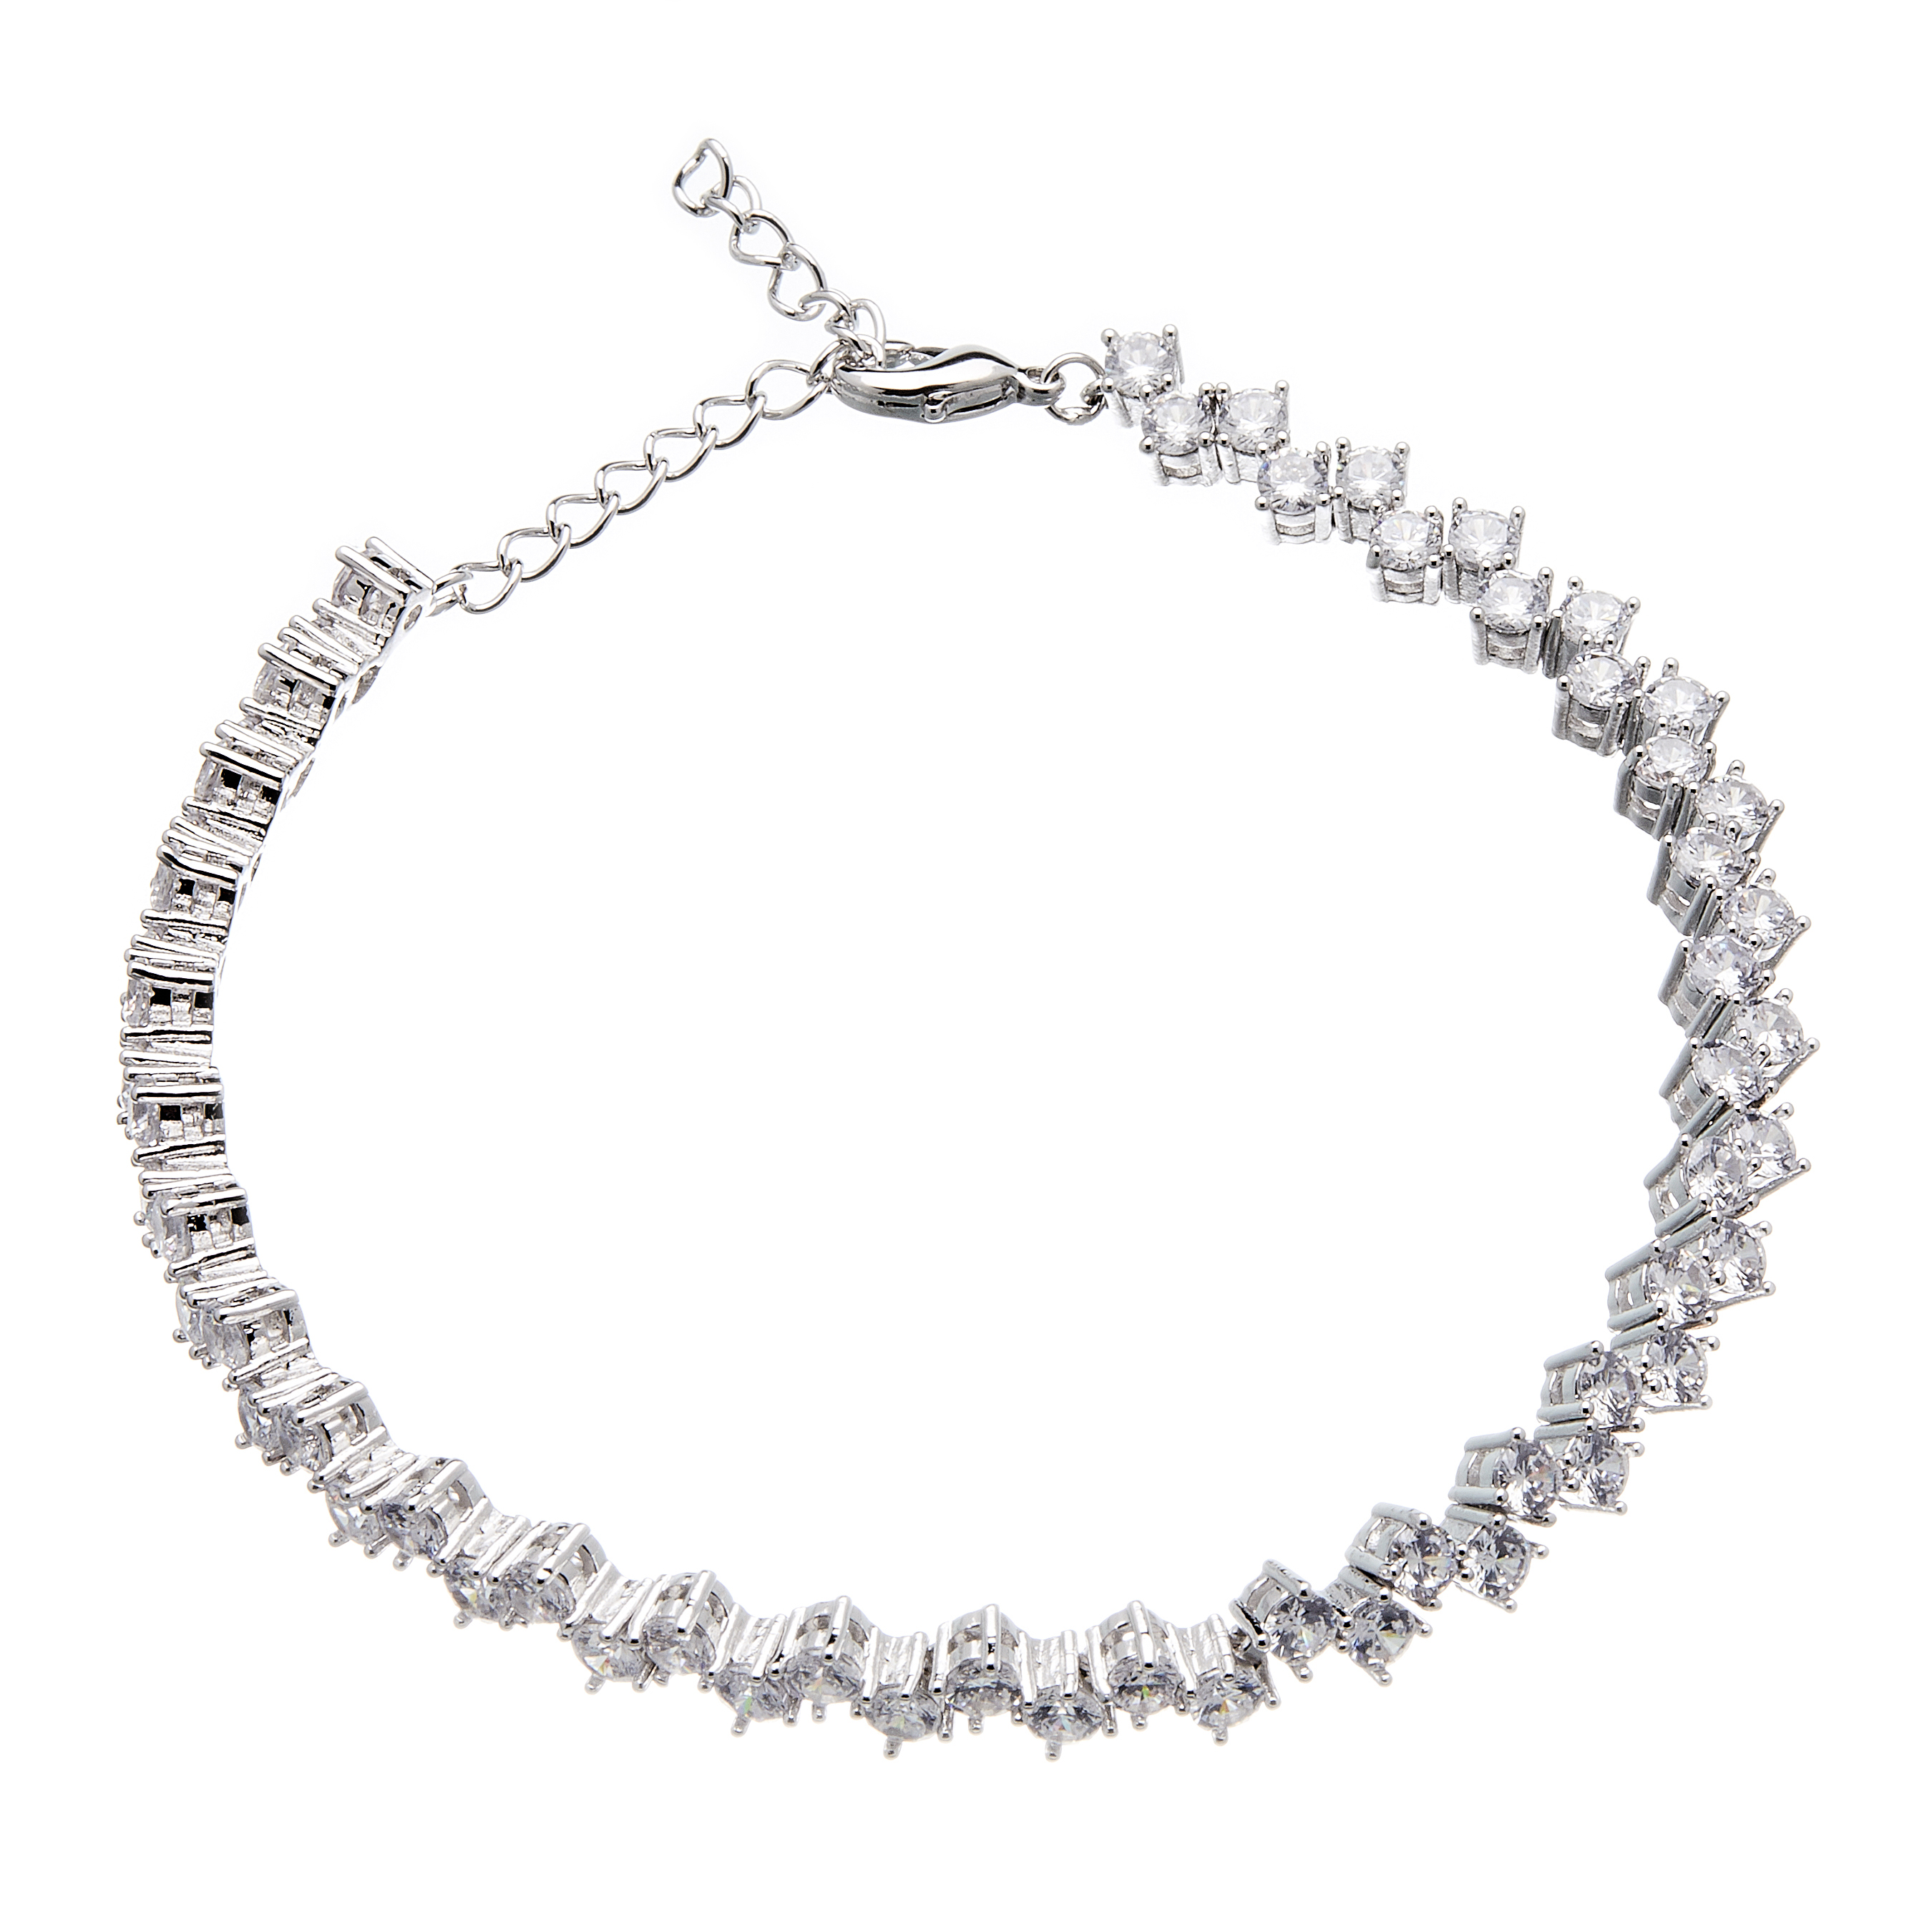 Silver Tennis Bracelet - lobster clasp with Cubic Zirconia Stones - Nava